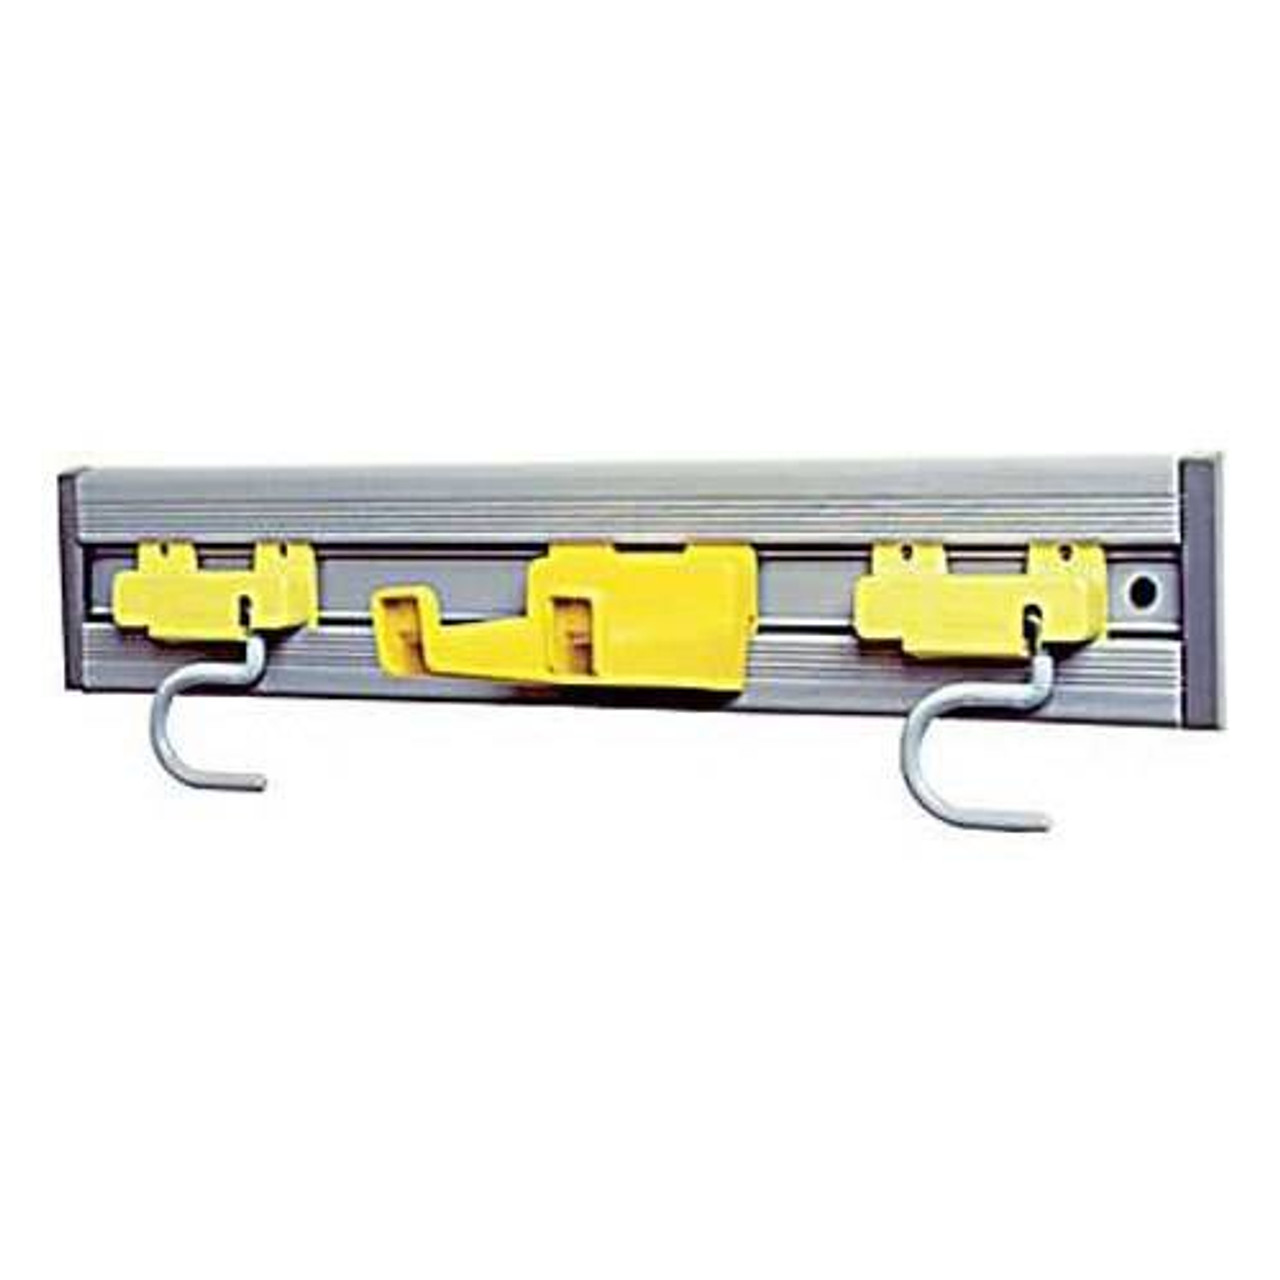 RUBBERMAID COMMERCIAL or CLOSET ORGANIZER/TOOL HOLDERS